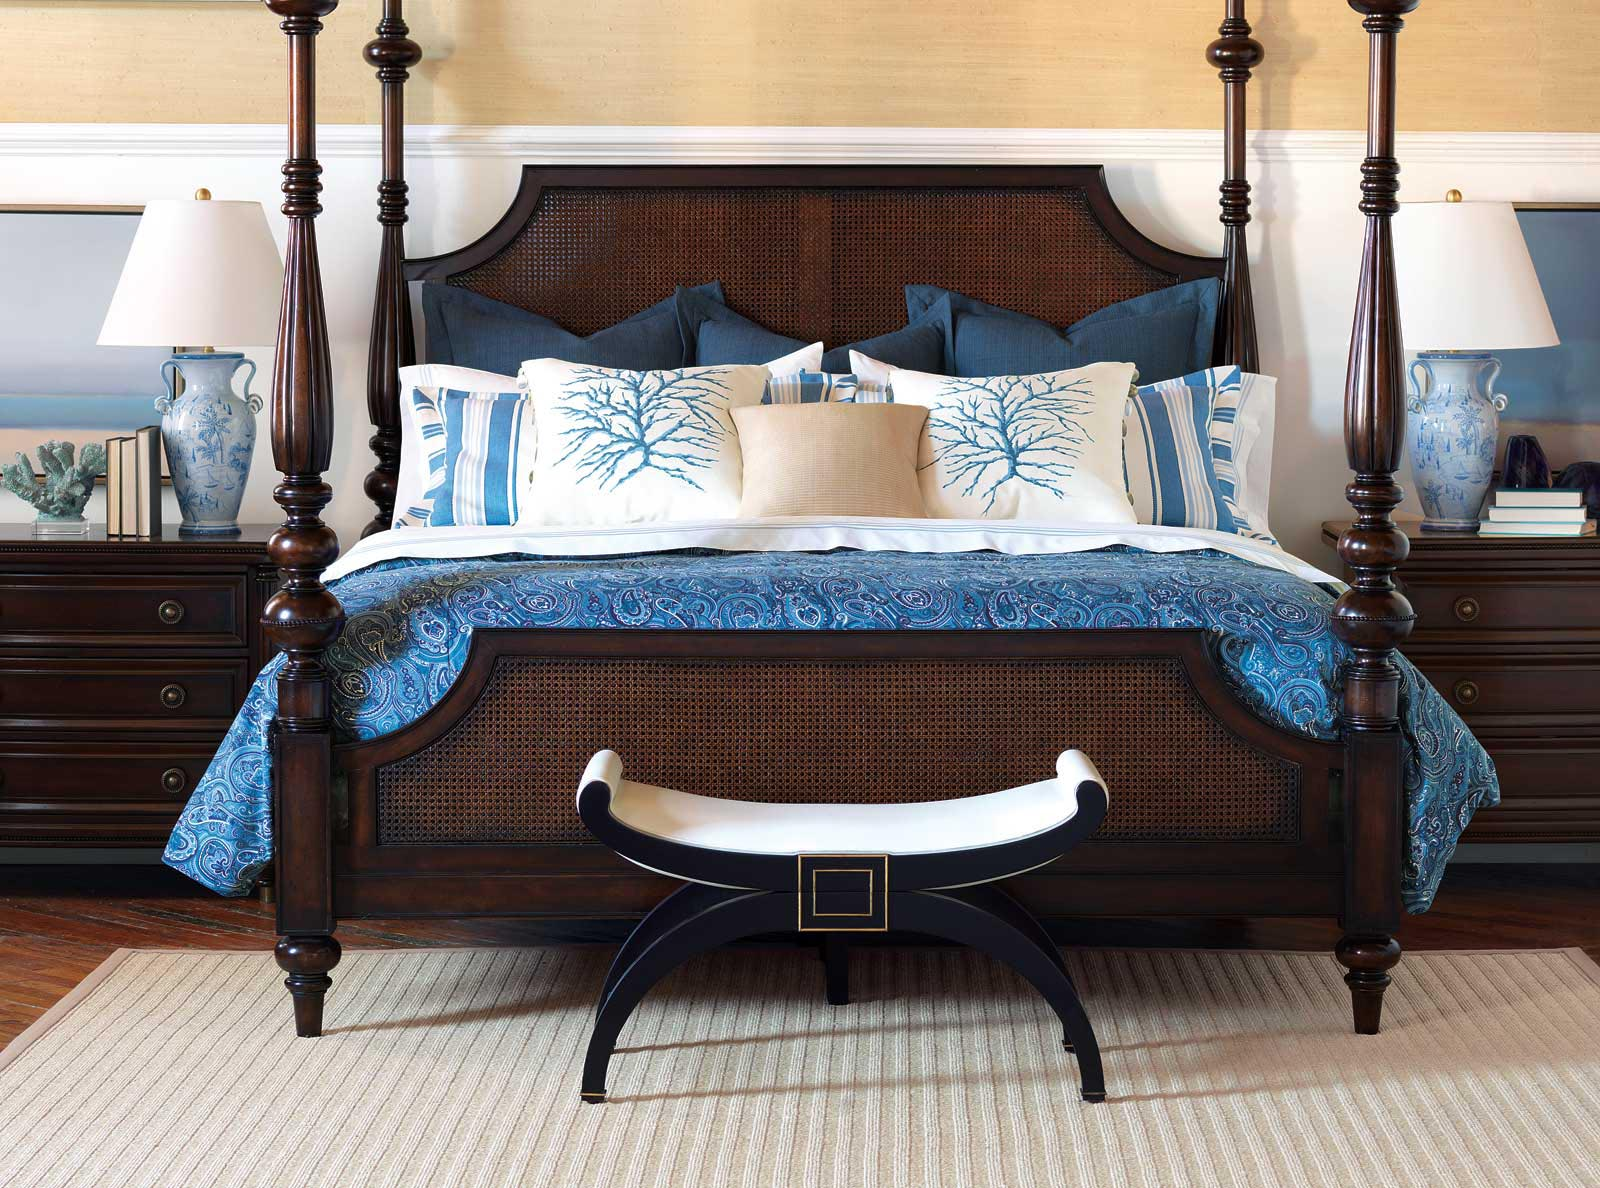 Nautical bedroom furniture ideas homesfeed for Bedroom ideas nautical